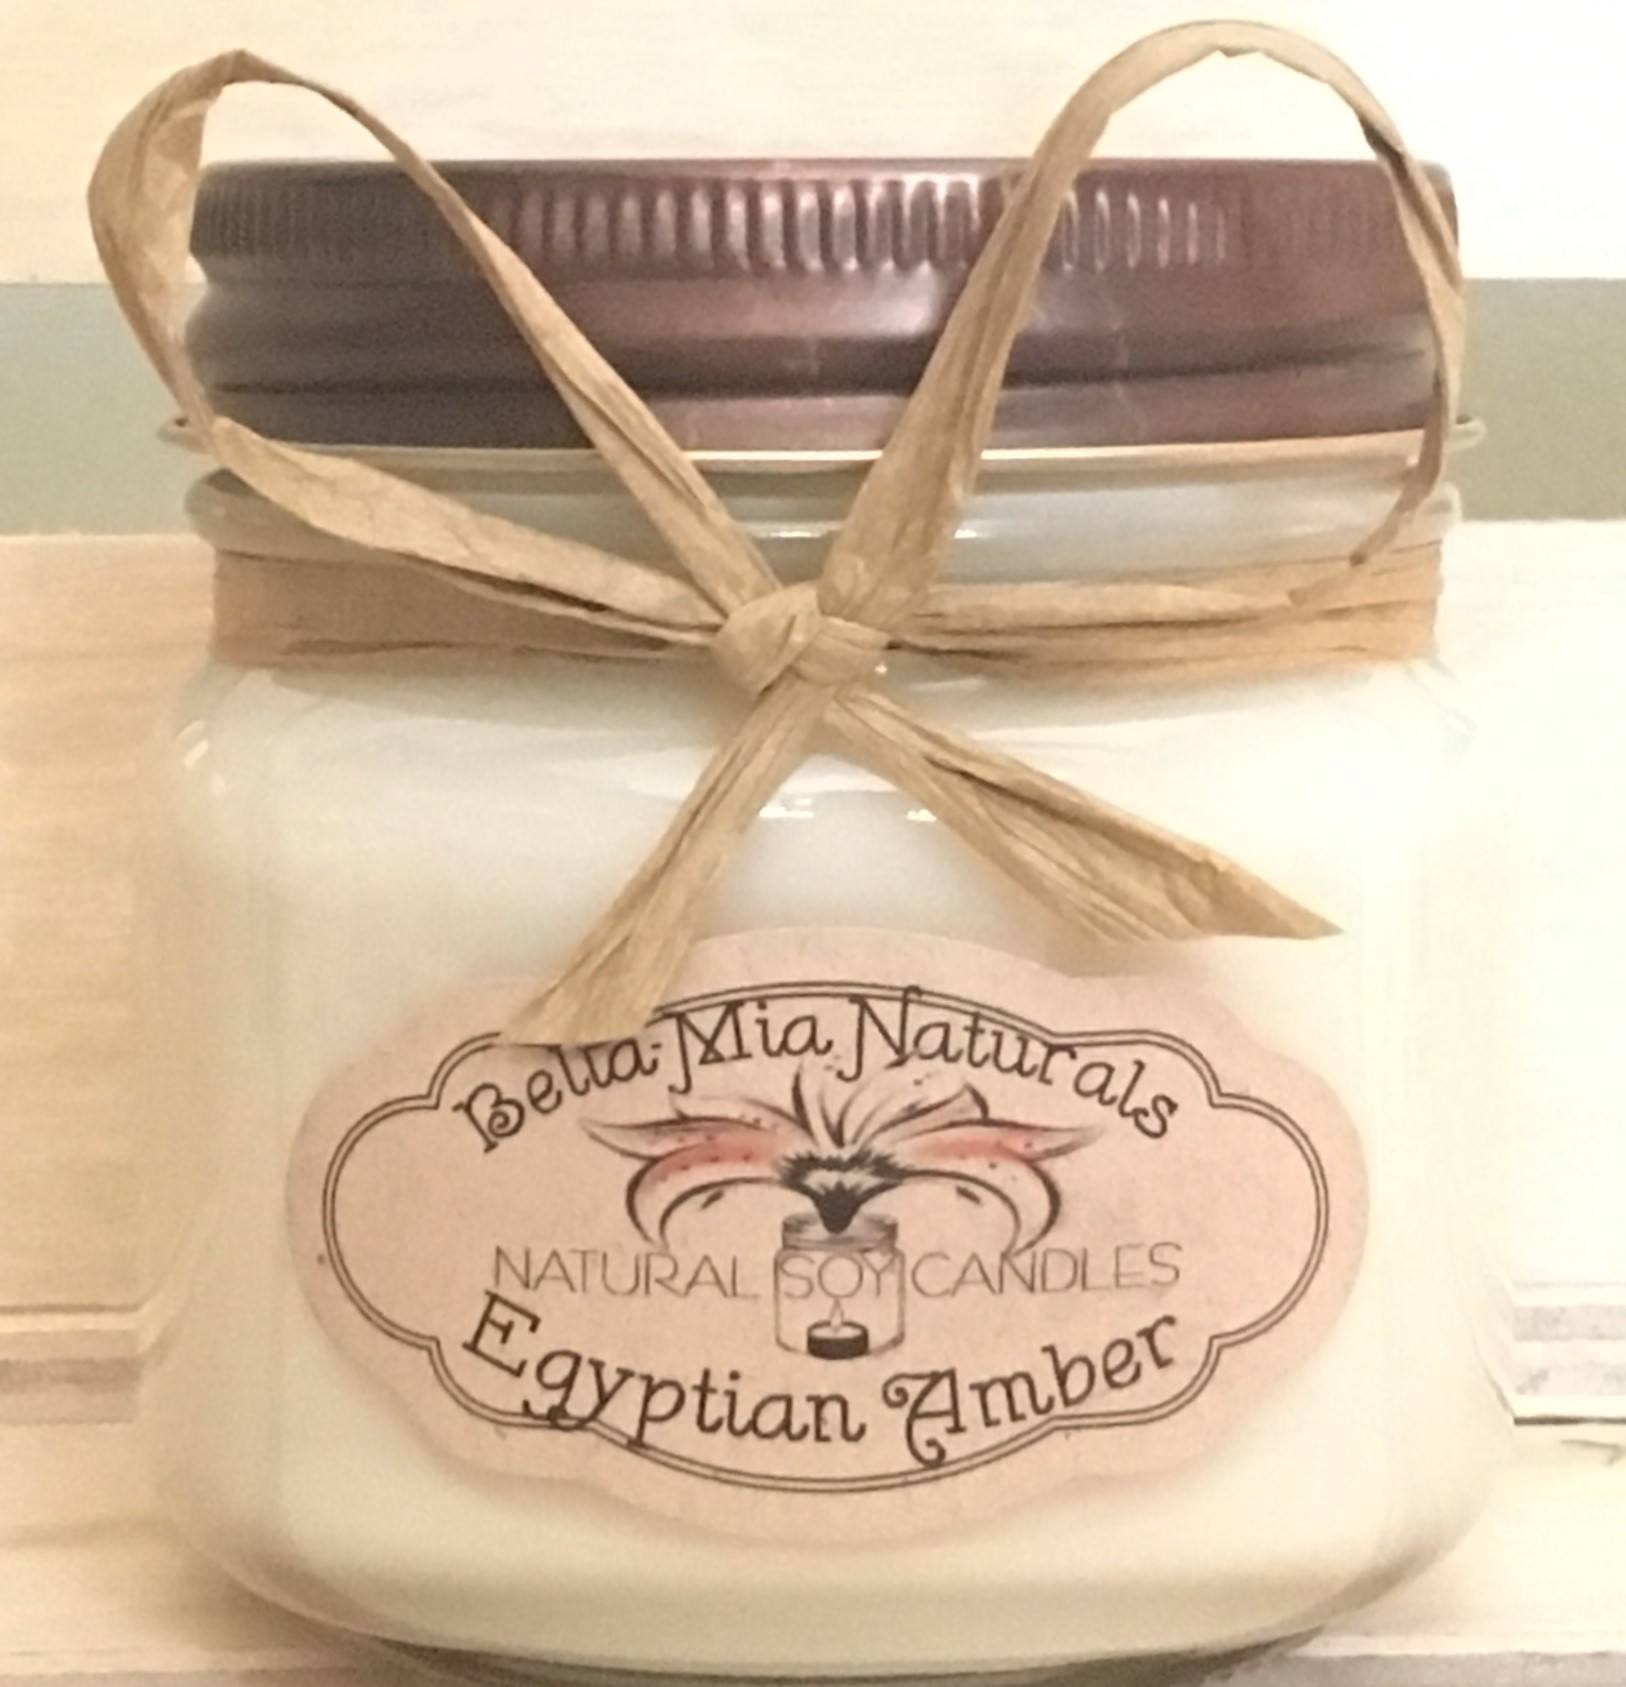 Egyptian-Amber Natural Hand Poured Soy Candles & Melts - Half-Pint - Bella-Mia Naturals All Natural Soy Candles & Lip Balms - 3